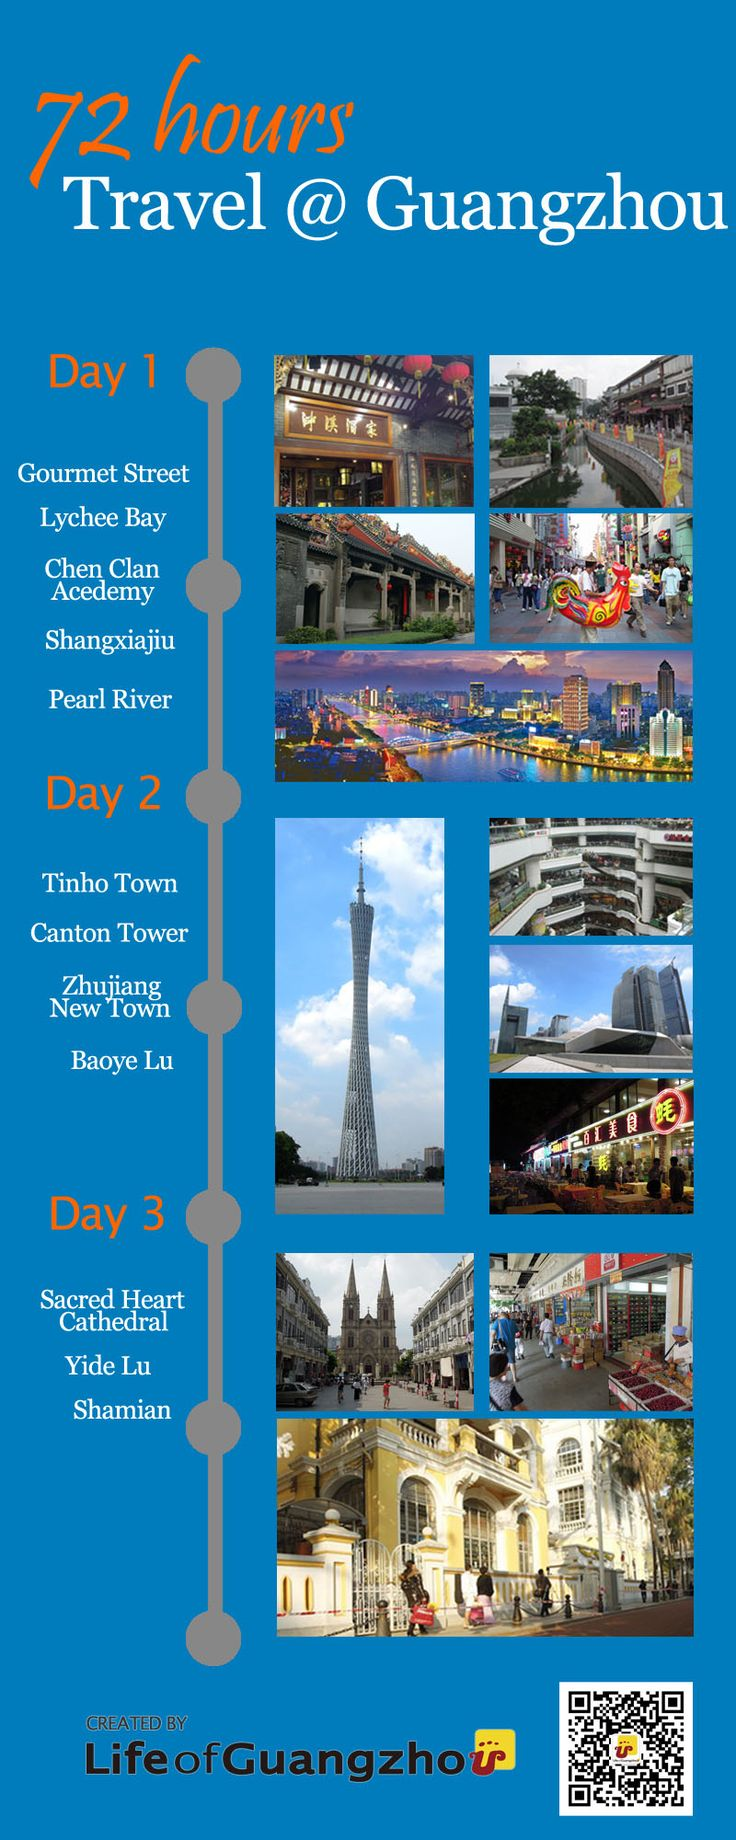 72 Hour tour of Guangzhou - great resource when a friend is visiting GZ